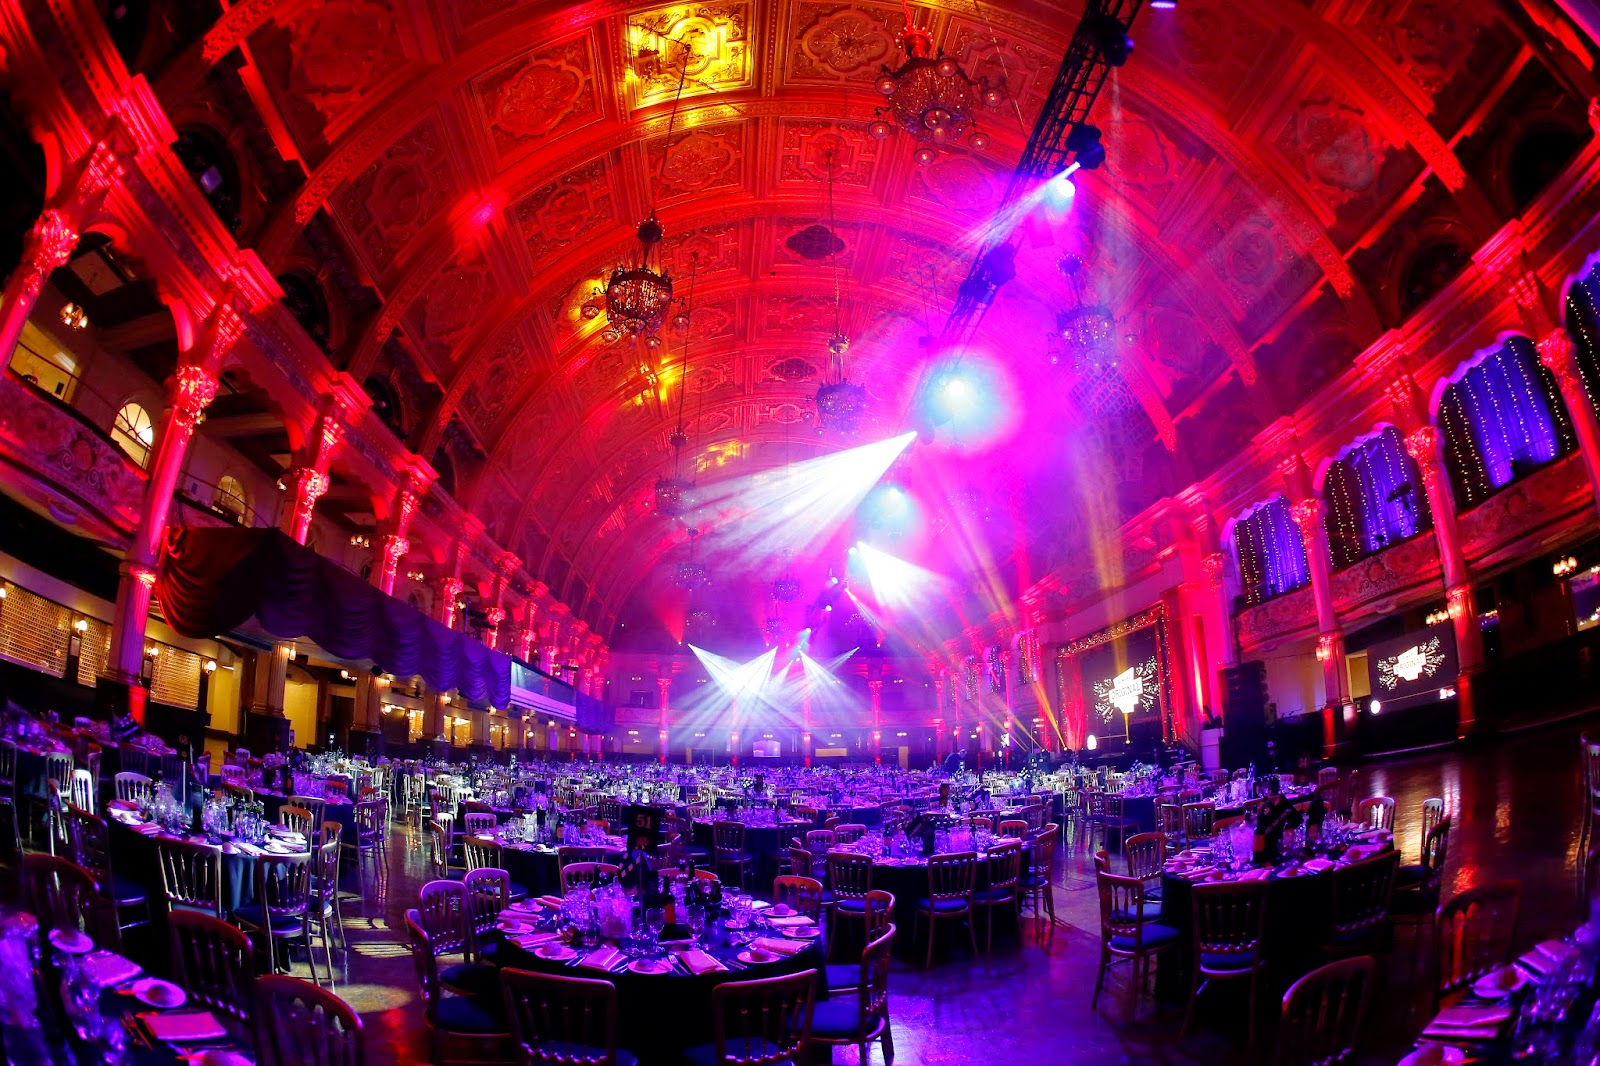 kfc rgm annual conference 2015 at blackpool winter gardens